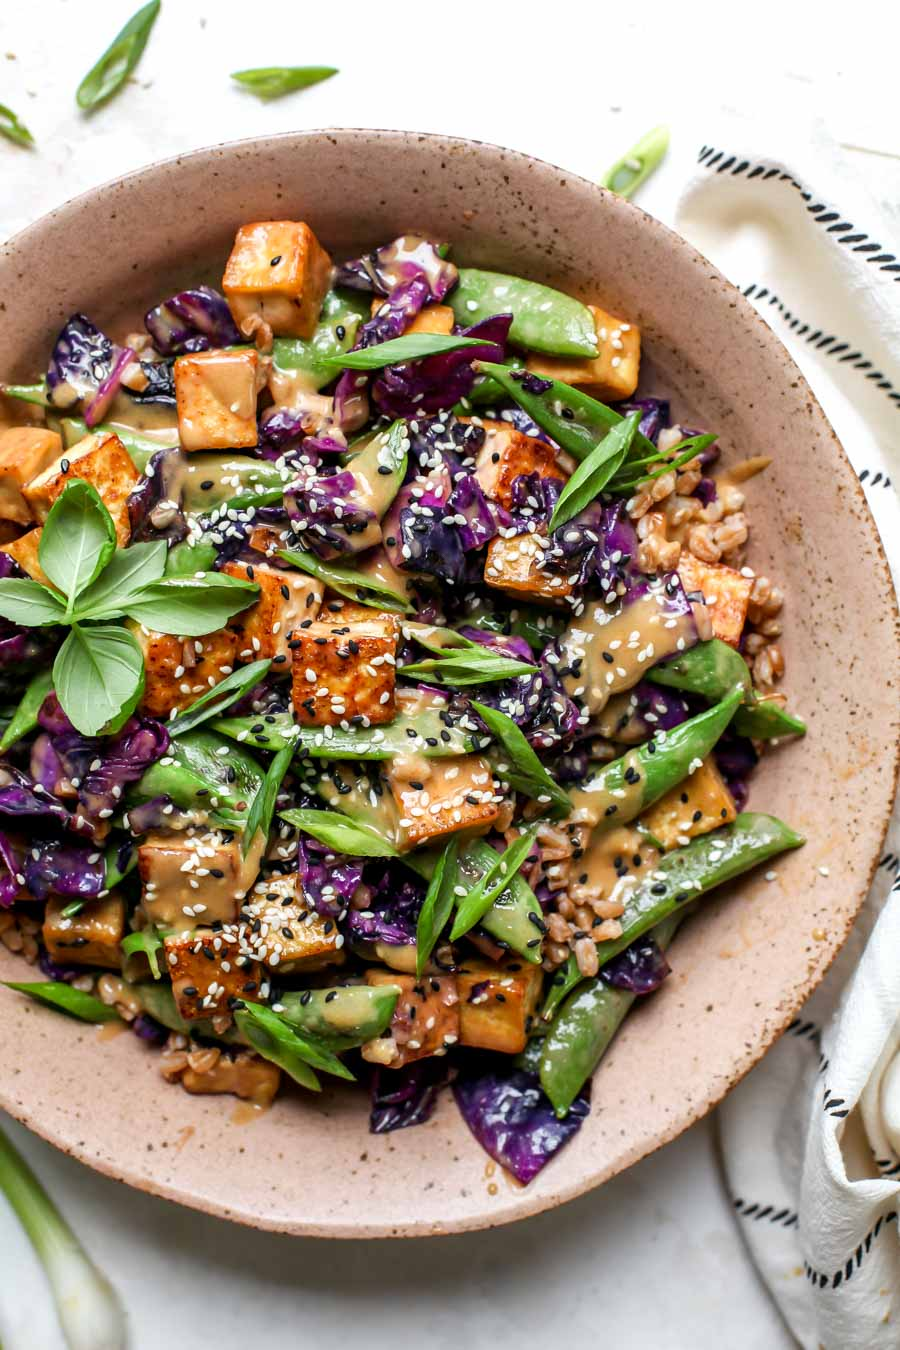 Easy Tofu Dinner or Meal Prep Lunch